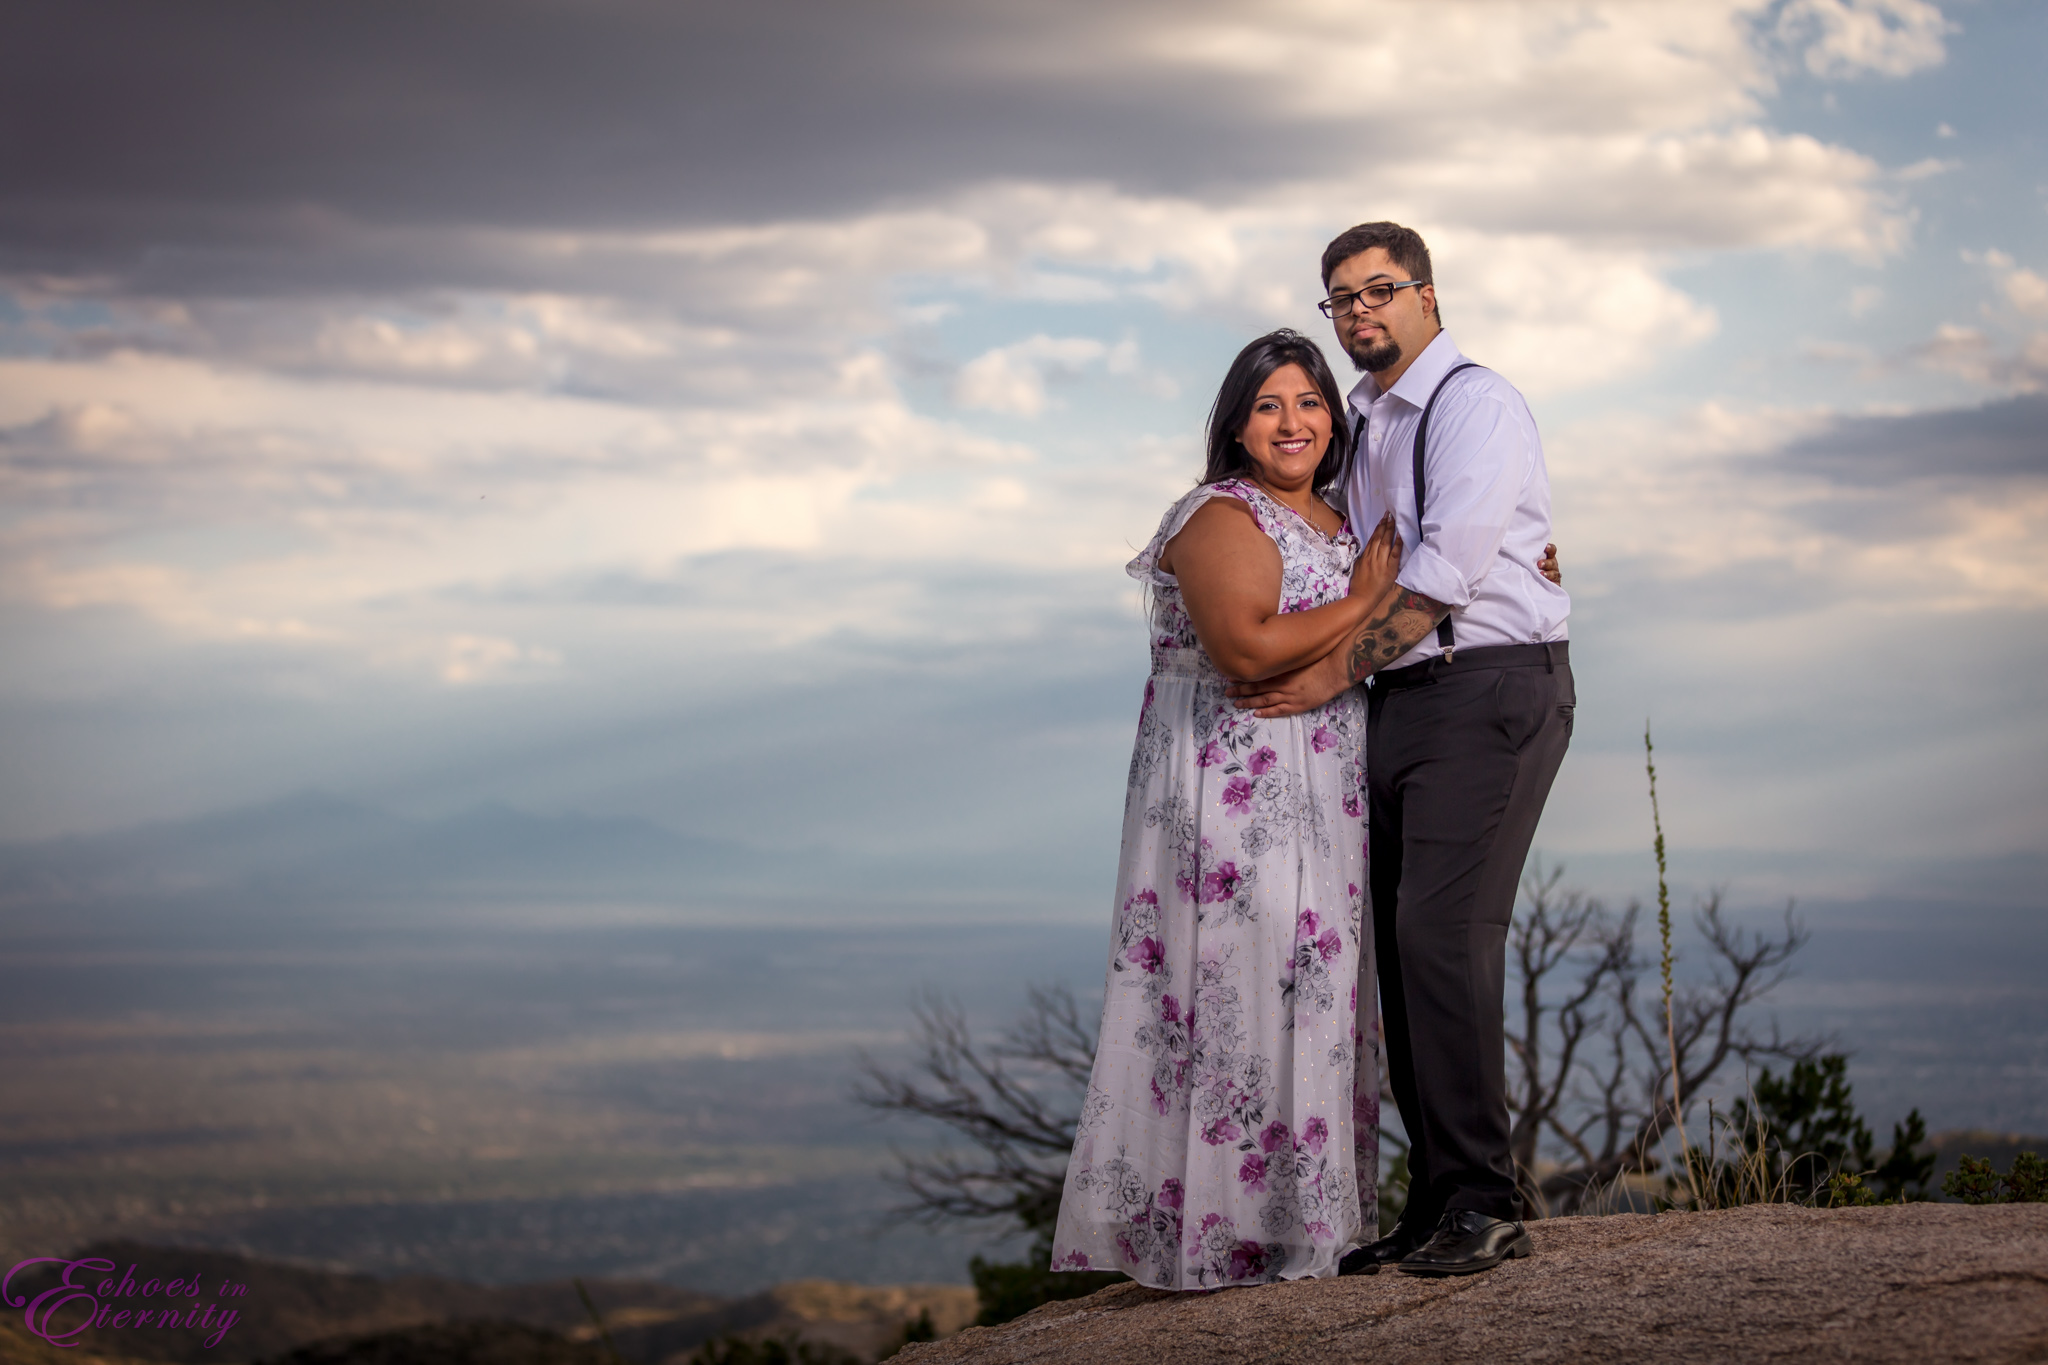 Zach and EJ Tucson Wedding and Engagement Photographer Mt. Lemmon Windy Point 15.jpg